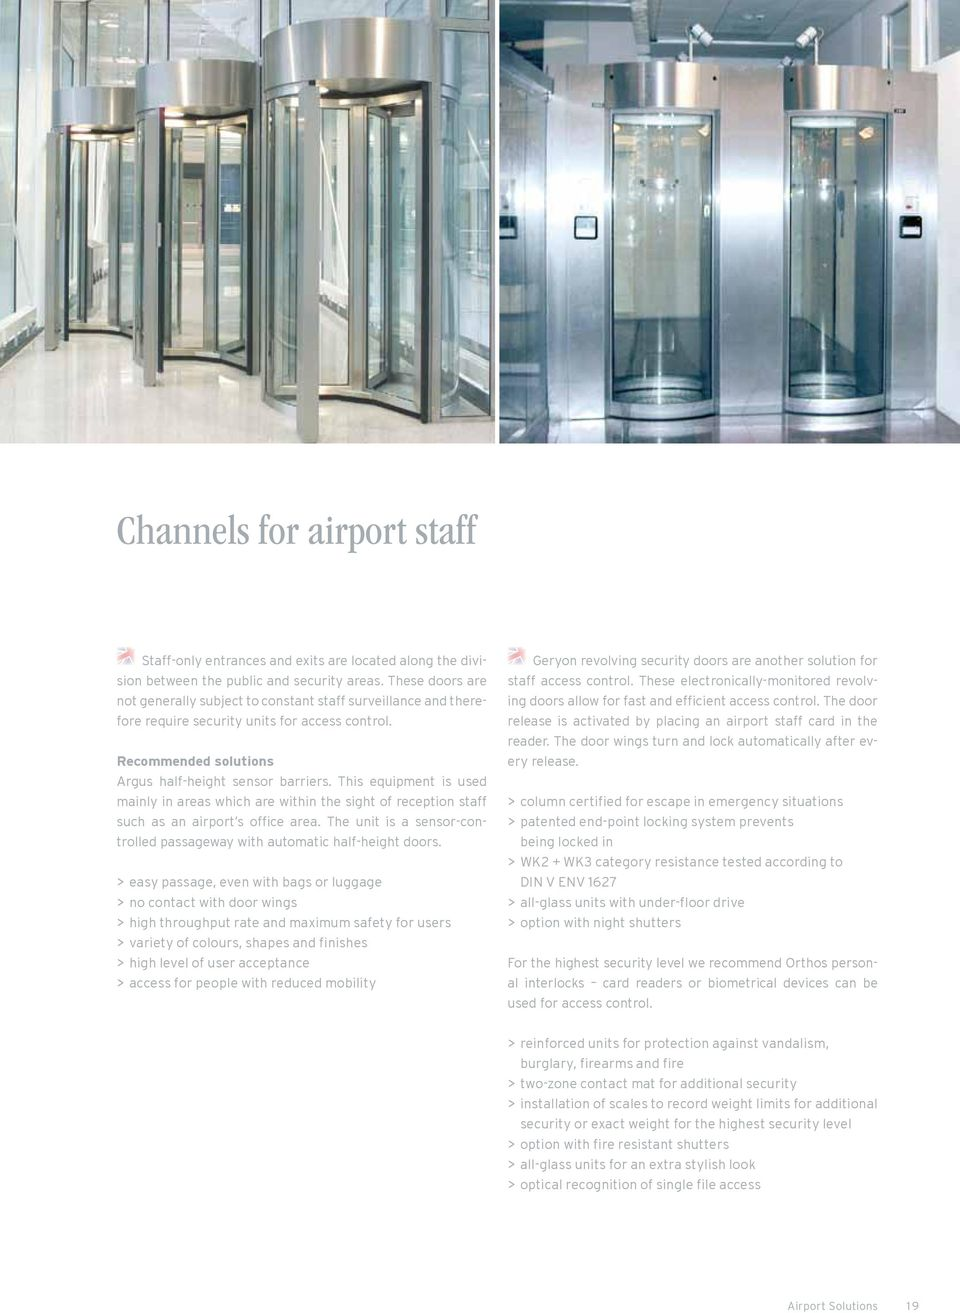 This equipment is used mainly in areas which are within the sight of reception staff such as an airport s office area. The unit is a sensor-controlled passageway with automatic half-height doors.